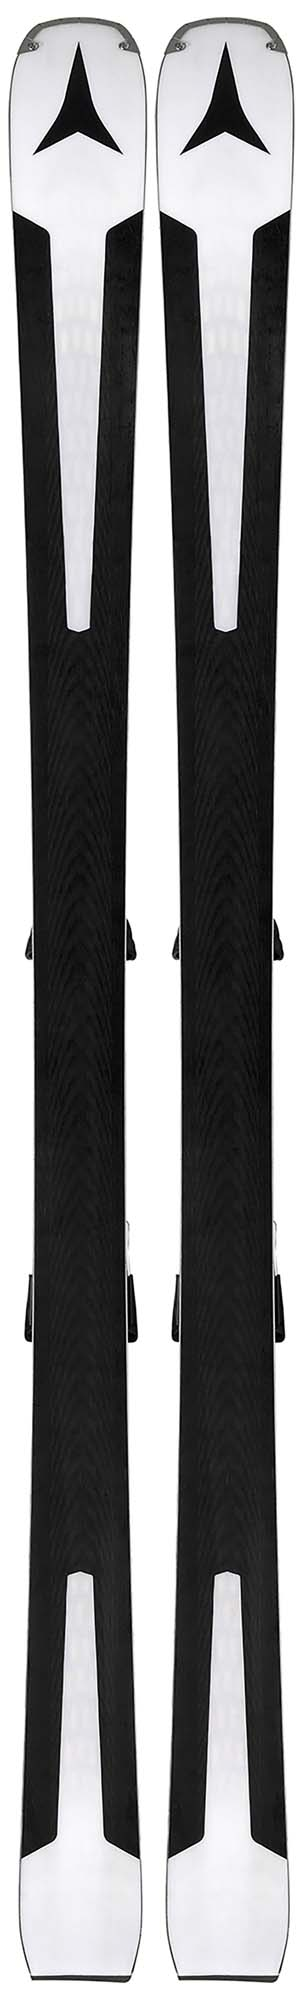 2020 Vantage 82 Ti Skis W Ft 12 Bindings